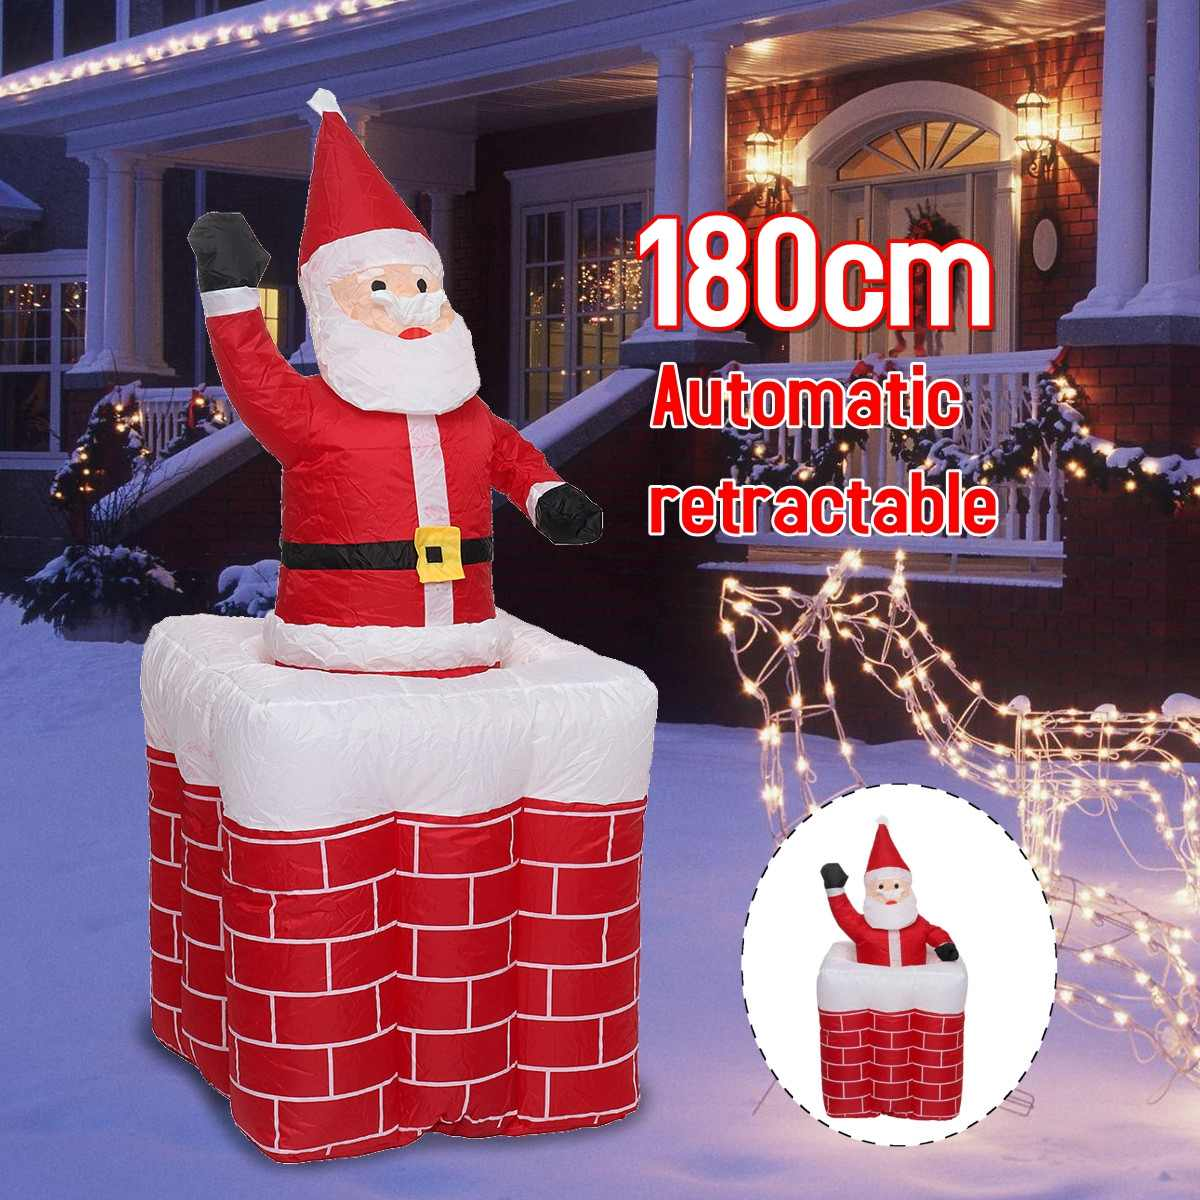 1.8 M Christmas home gard decoration lifting chimney inflatable Santa Claus light ornaments Christmas decorations Toy gifts 3 8 3 2 2 7m santa claus house tent inflatable christmas house for outdoor advertising ornaments